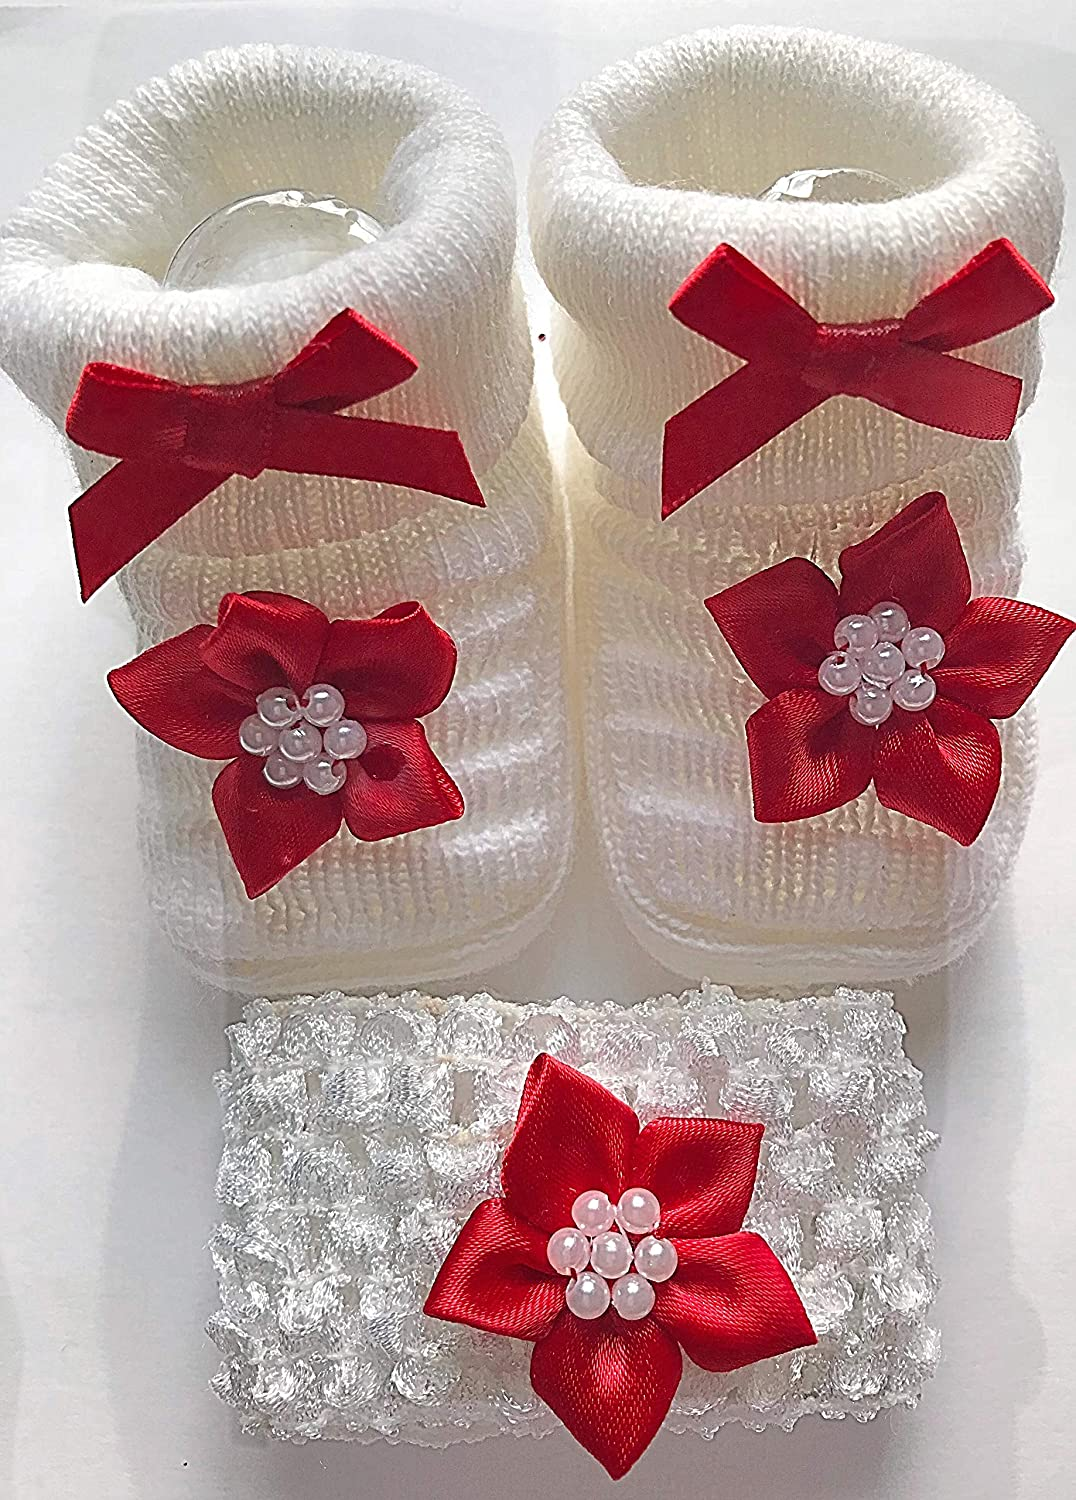 Baby Girls Newborn Xmas Christmas Red Flower Bootees Knitted Booties Shoes & Crochet Headband- In Gift Bag- 0-3 Months Soft Touch